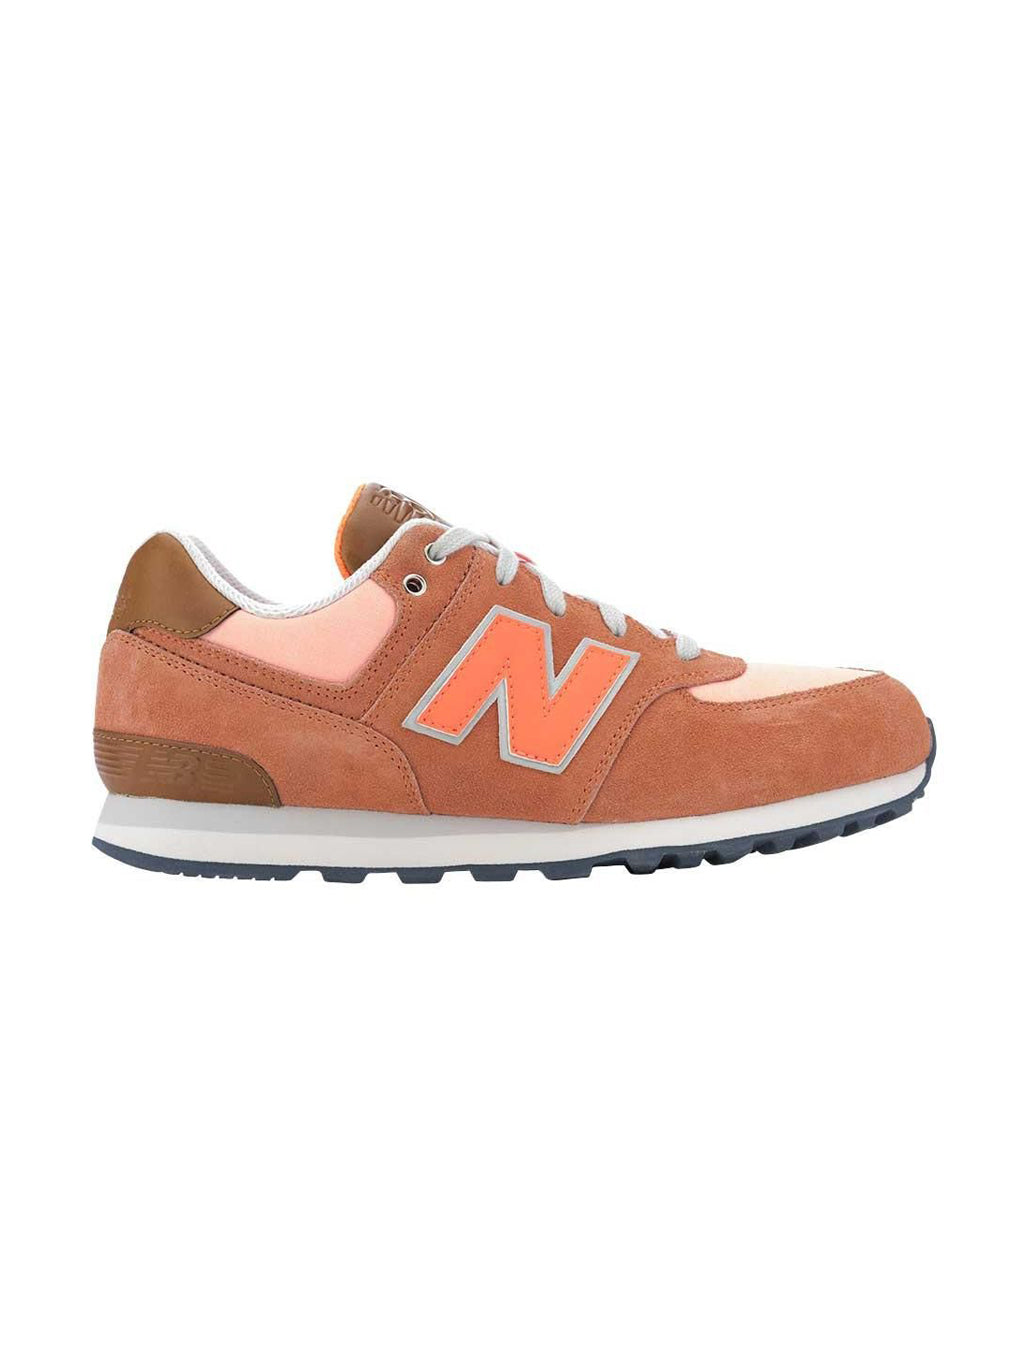 Pink & Peach 574 D Running Shoes